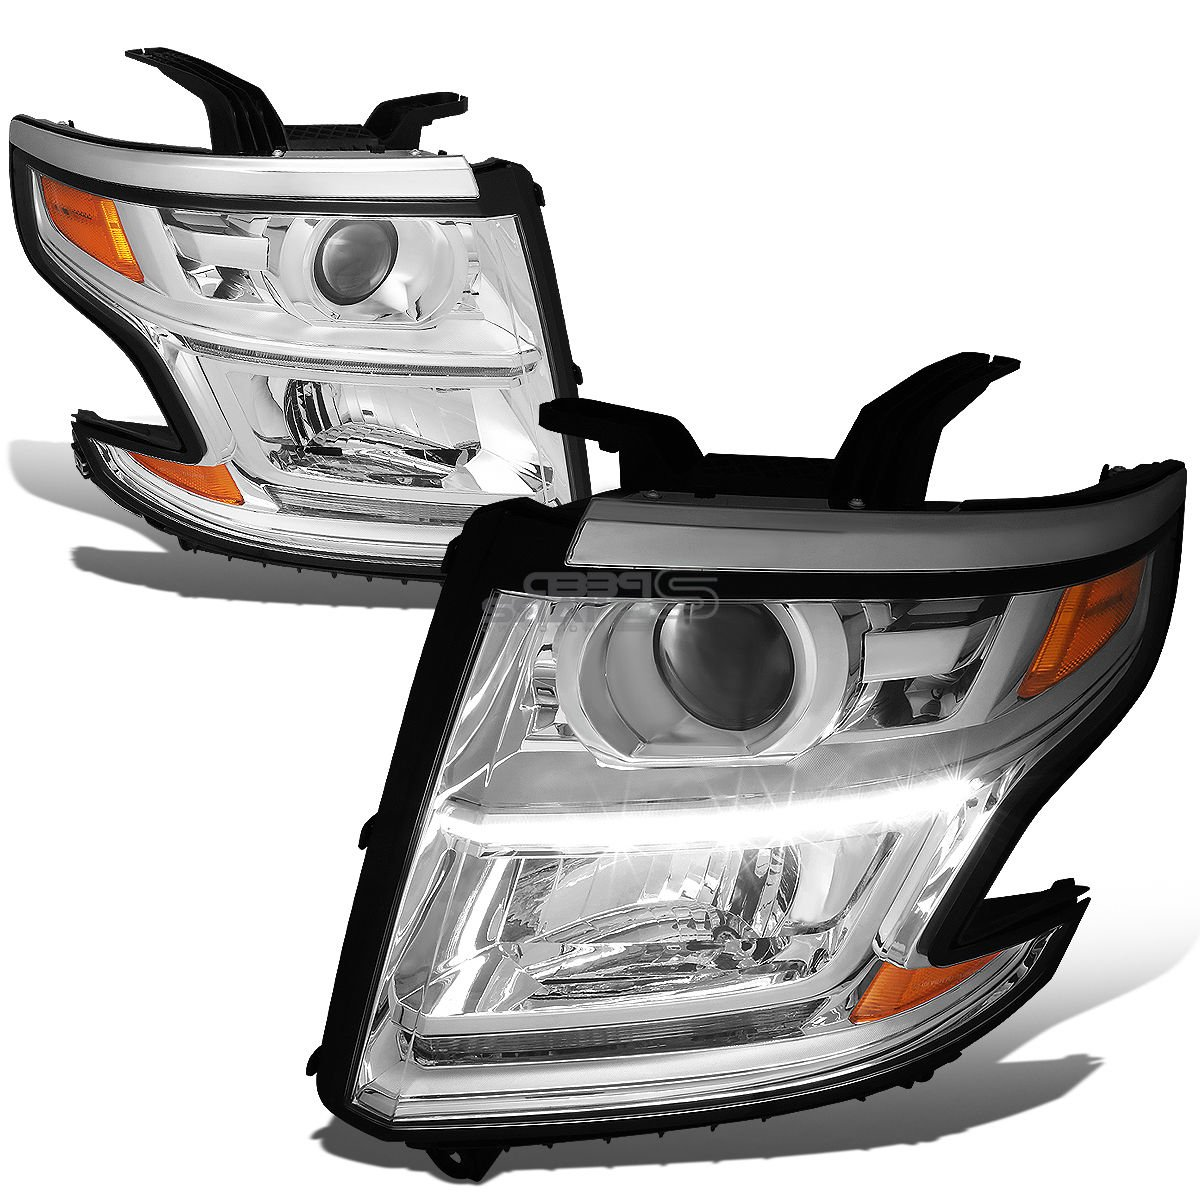 Rxmotor Chevy Tahoe Suburban LED Headlight Projector Front Pair Driver Passenger LH RH Assembly Direct Replacement for 2015 2016 2017 (Amber Chrome)